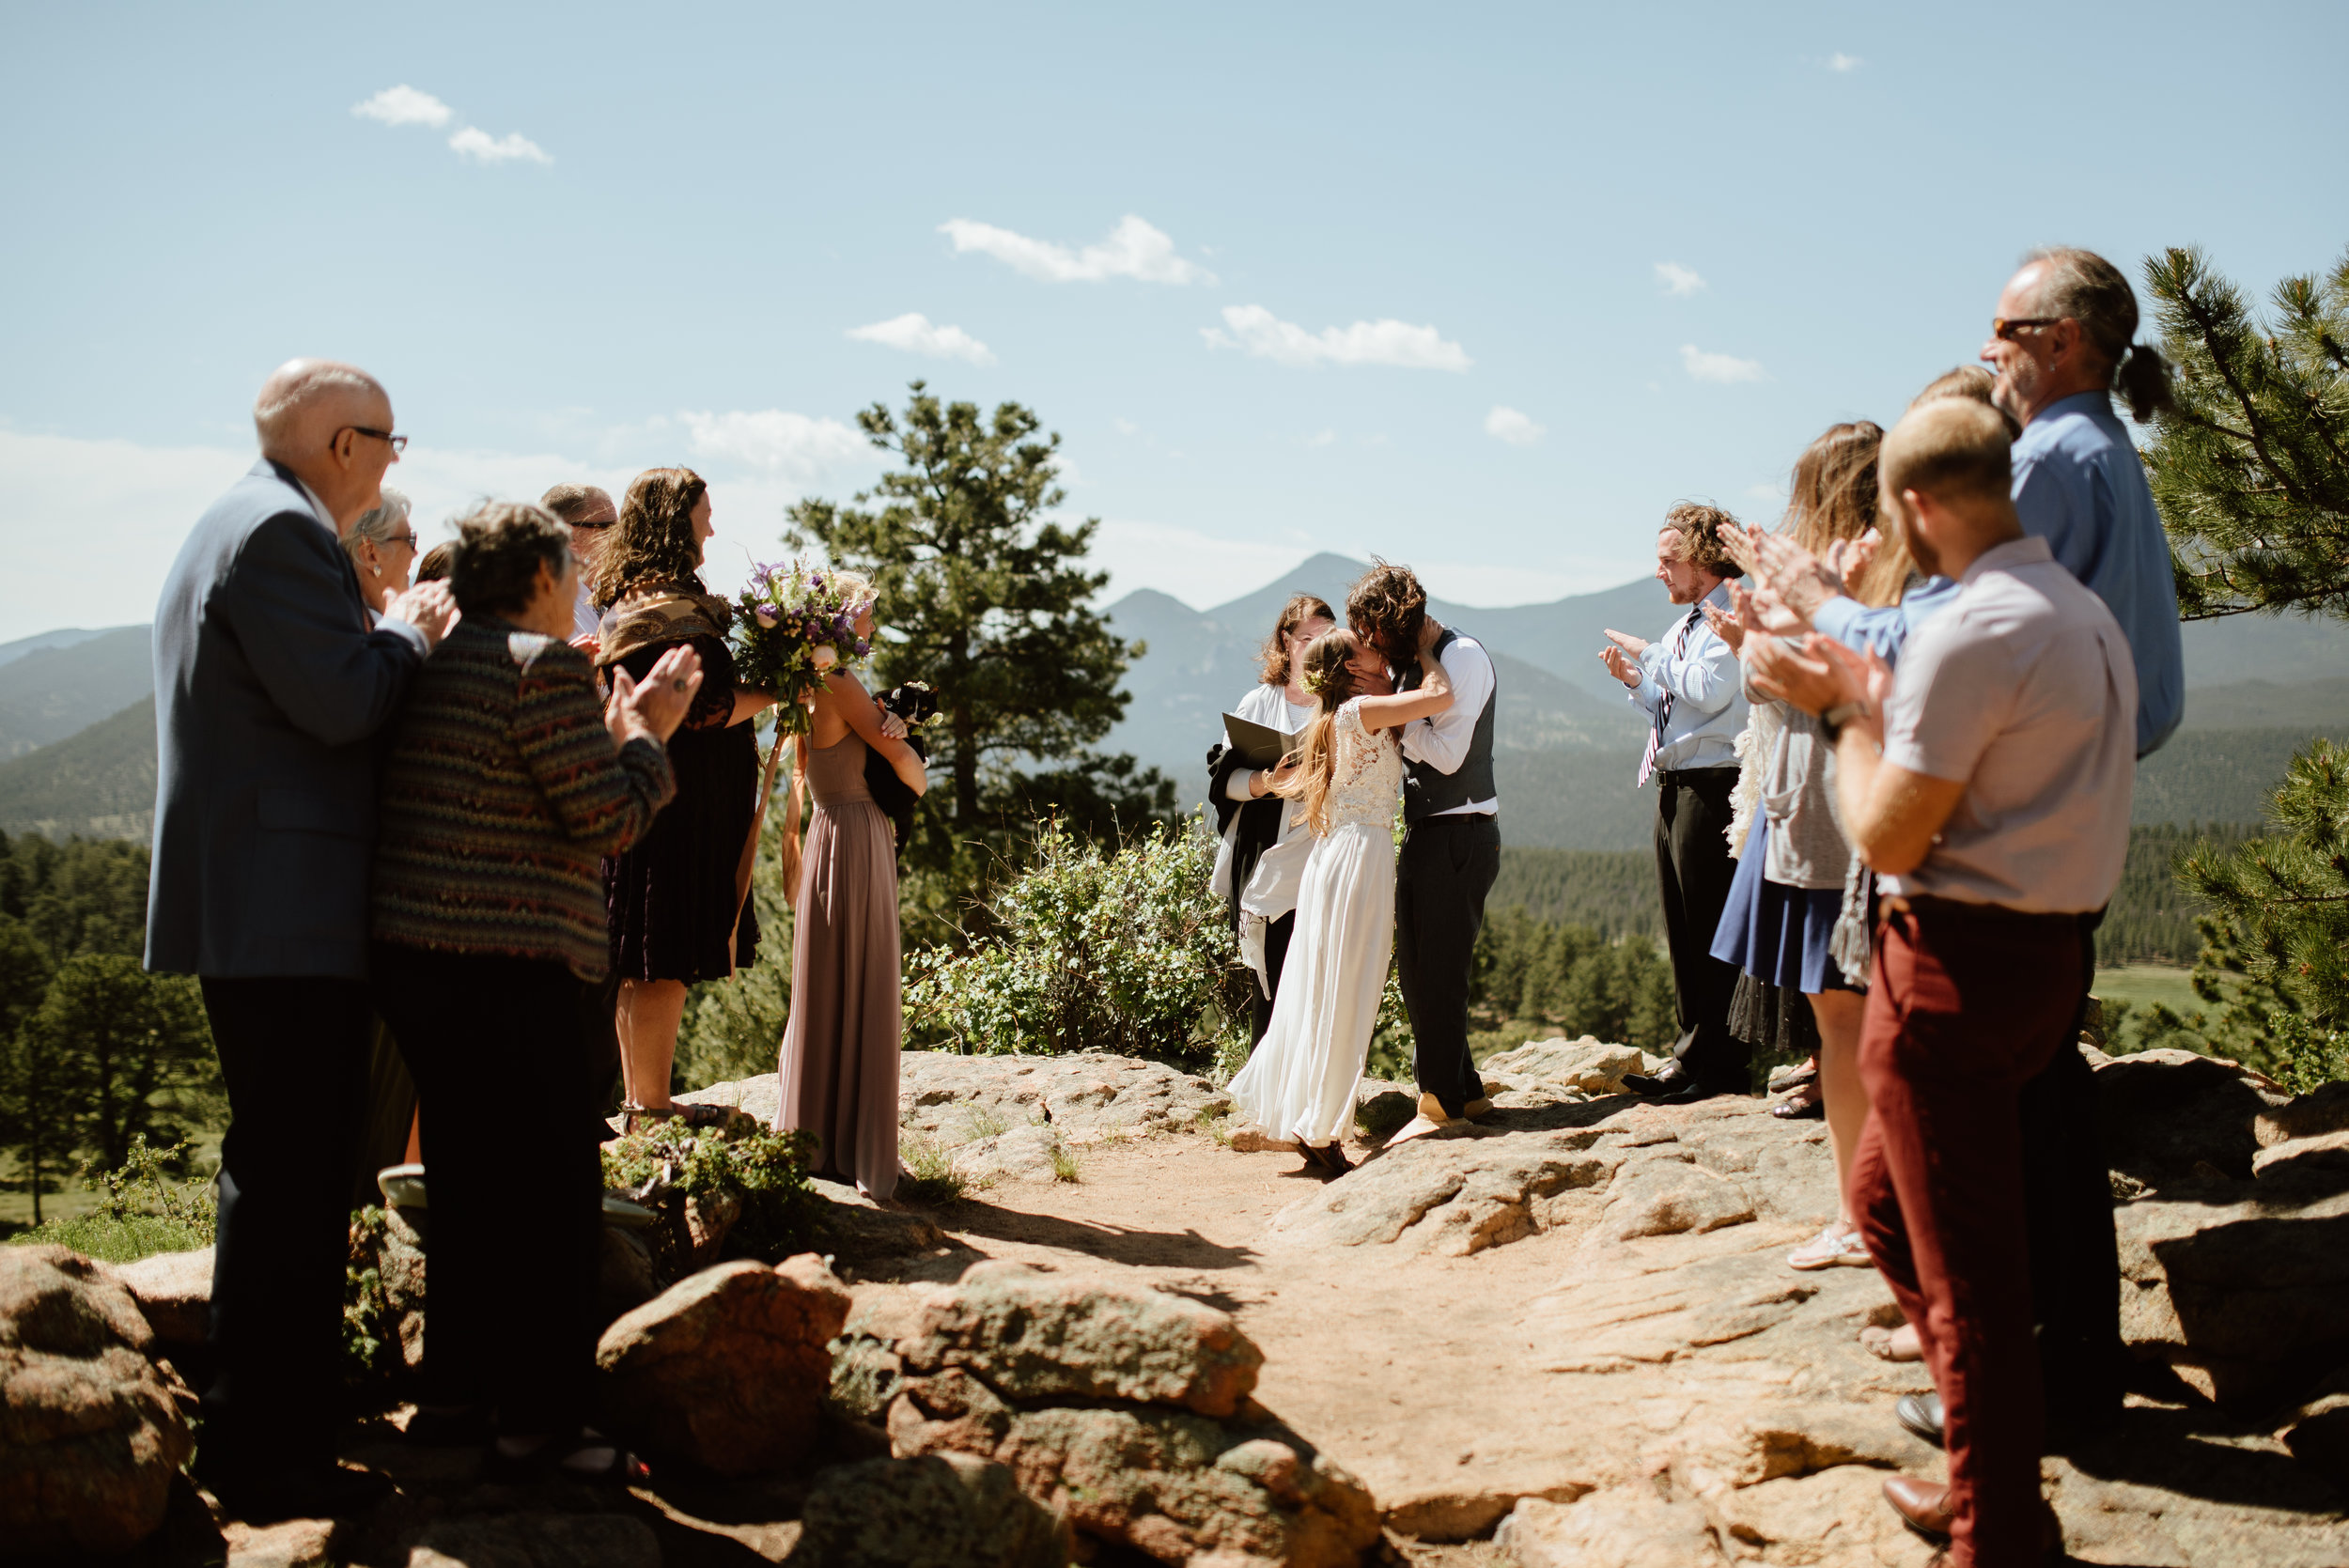 This is such a beautiful wedding ceremony at 3m curve on Trail Ridge Road in RMNP! I can't believe how incredible that mountain view is! | Rocky Mountain National park elopement photos by adventure wedding photographer, Maddie Mae.